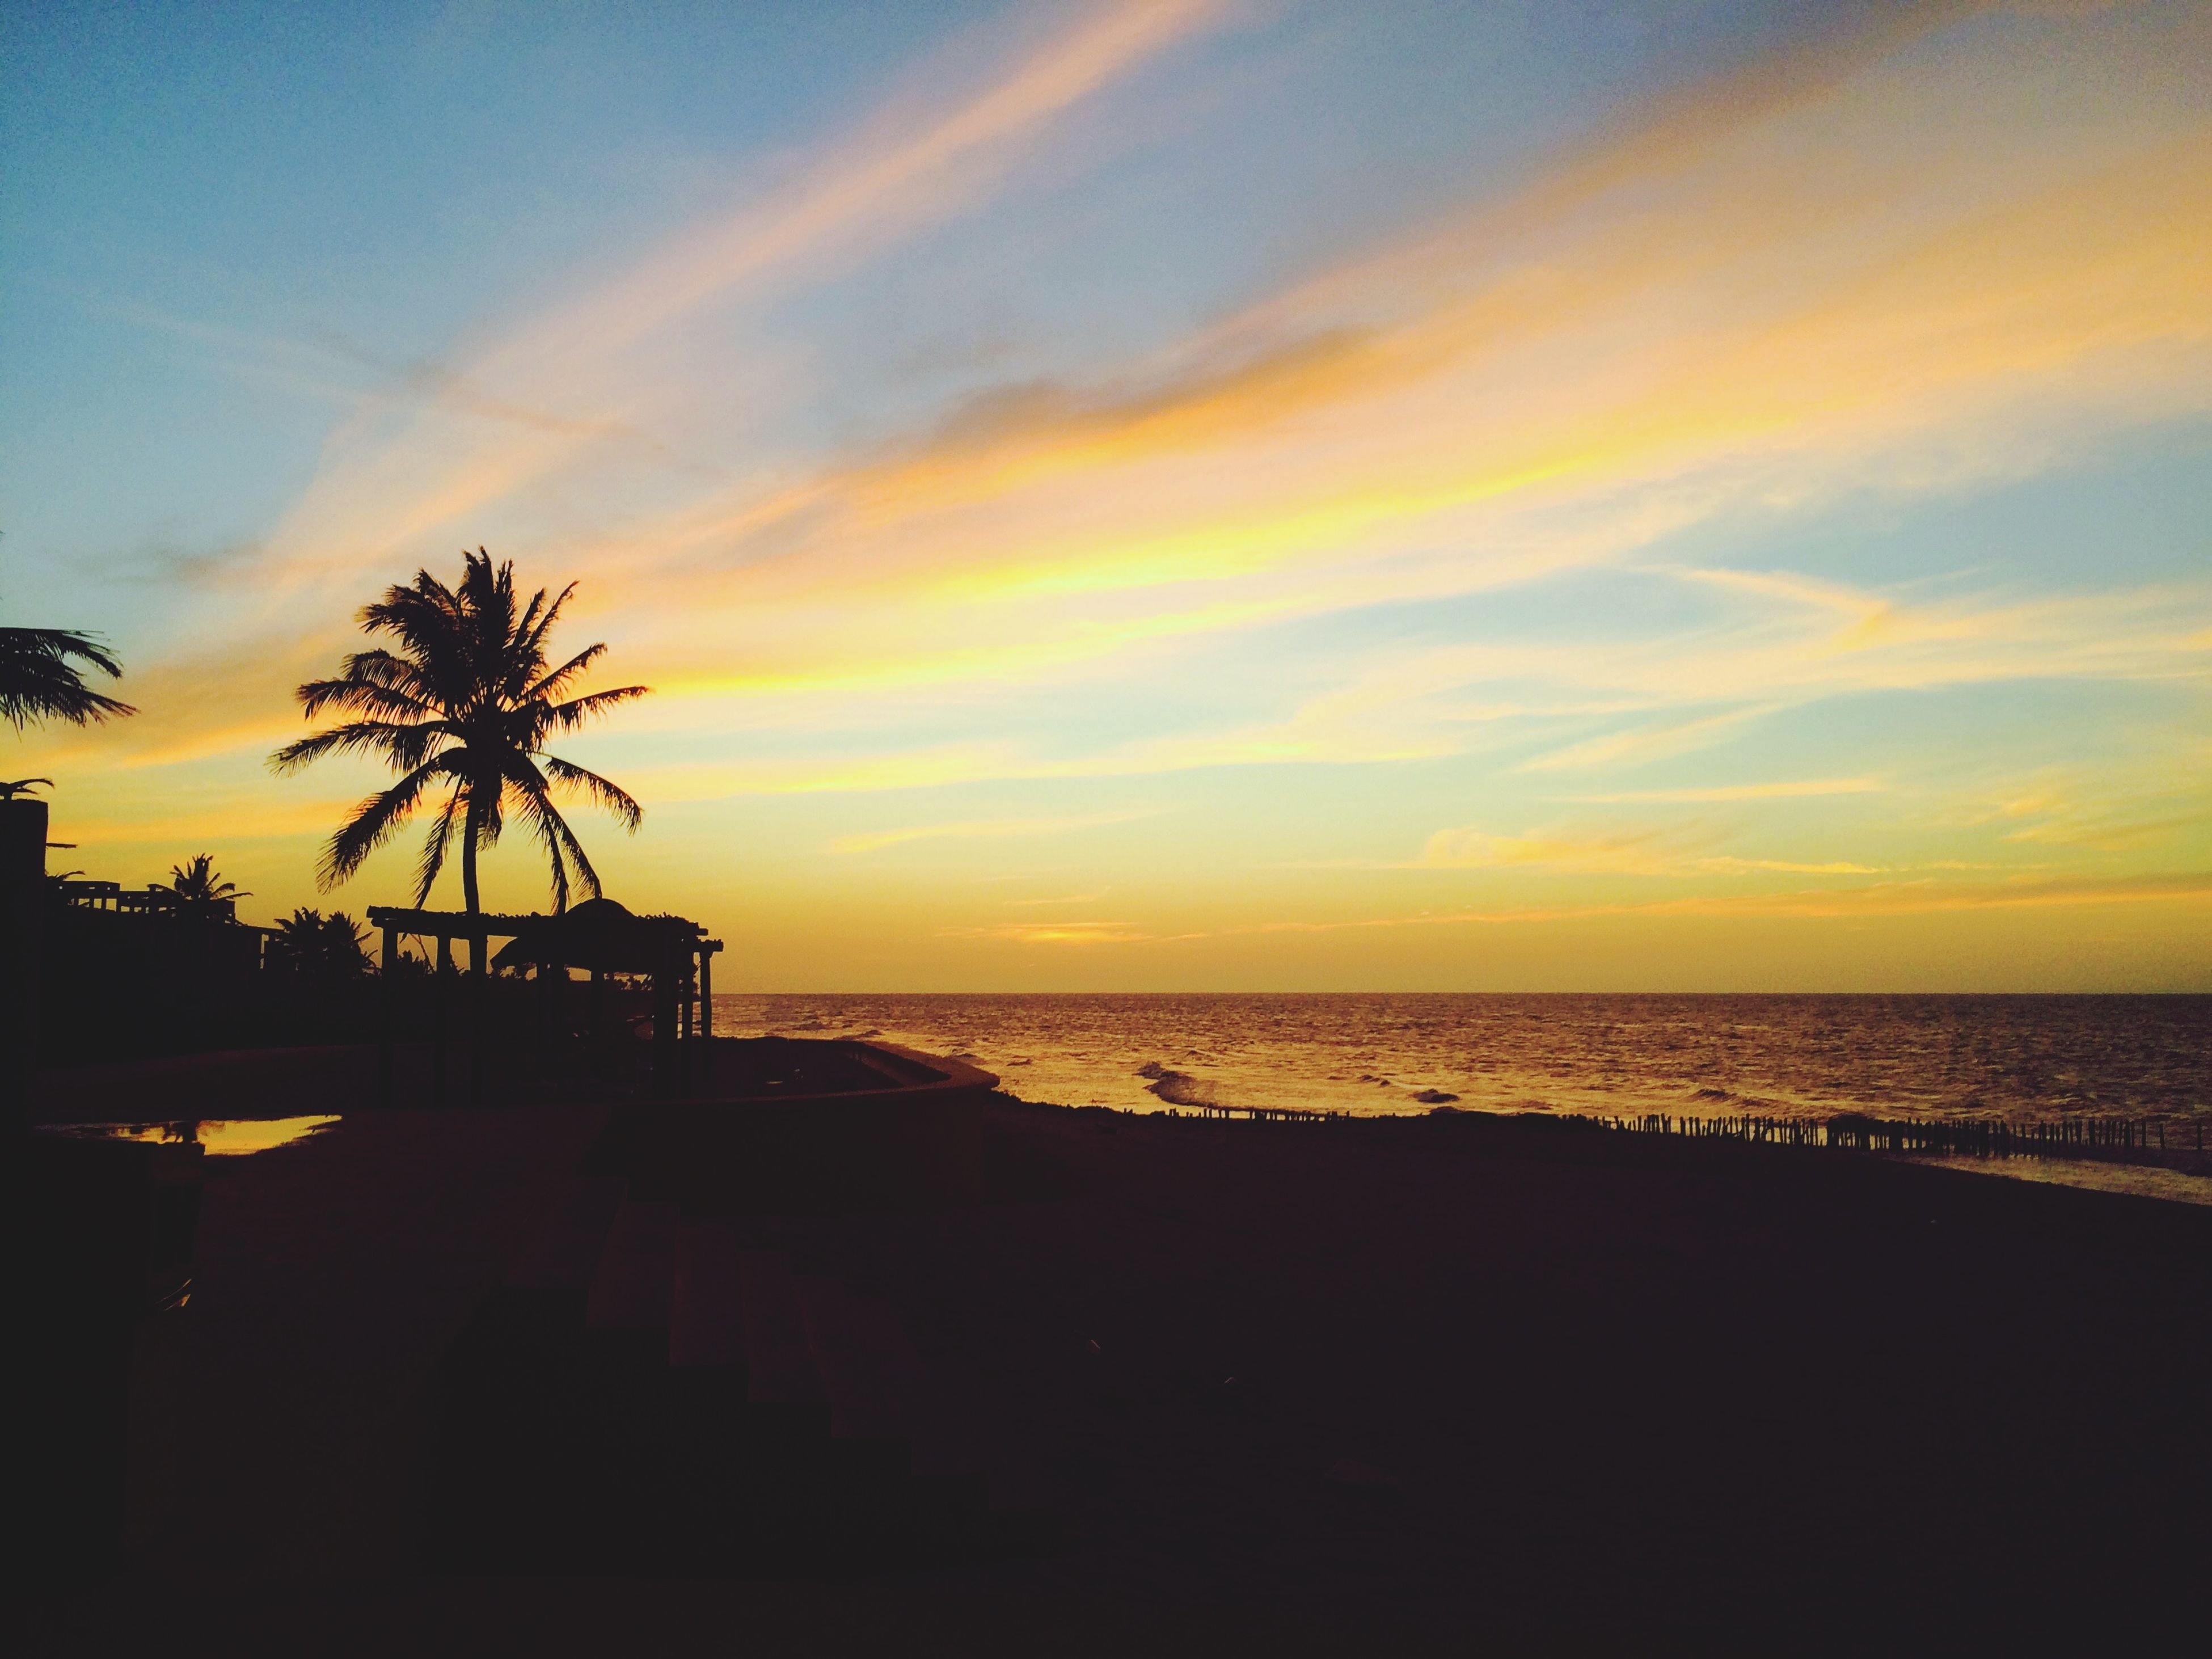 sea, horizon over water, sunset, water, sky, tranquil scene, scenics, silhouette, beauty in nature, tranquility, beach, palm tree, nature, cloud - sky, idyllic, orange color, cloud, shore, tree, outdoors